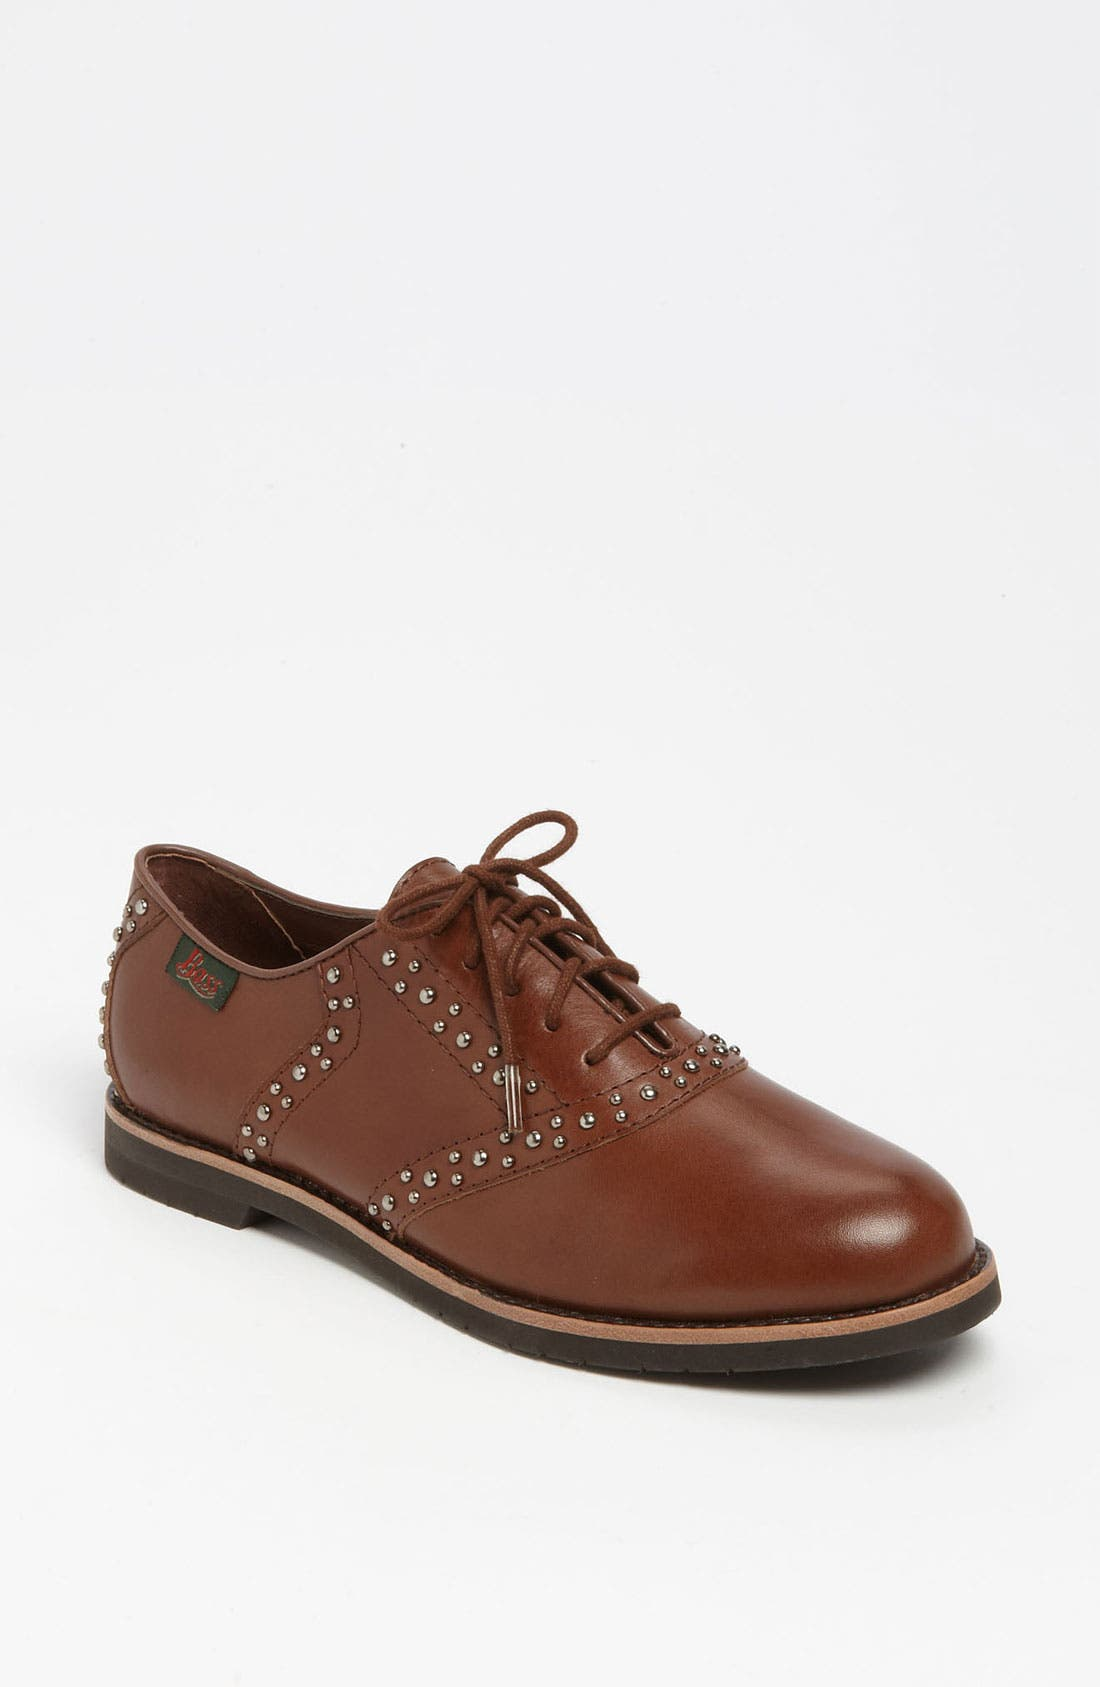 Alternate Image 1 Selected - G.H. Bass & Co. 'Enfield' Lace-Up Oxford